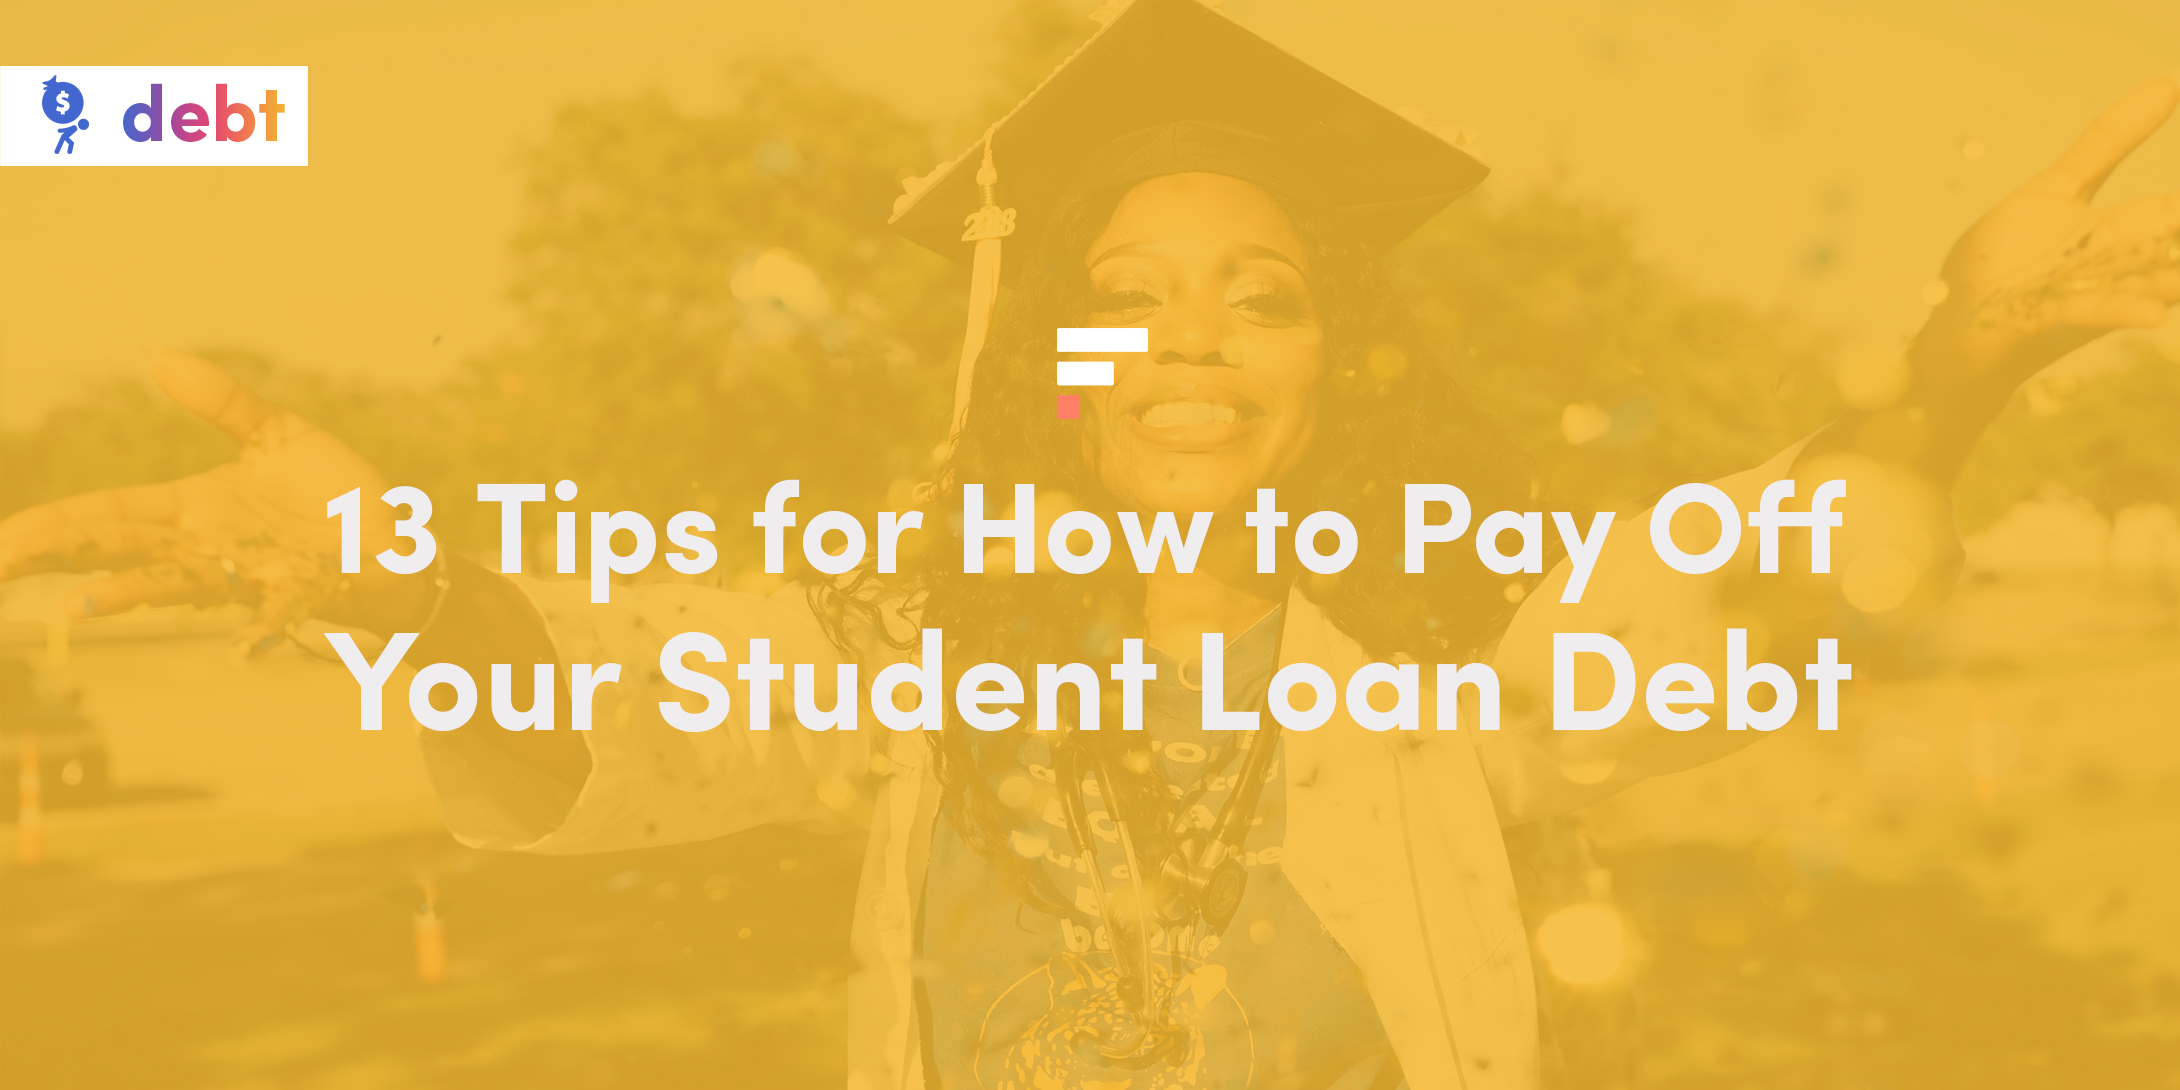 13 Tips for How to Pay Off Your Student Loan Debt